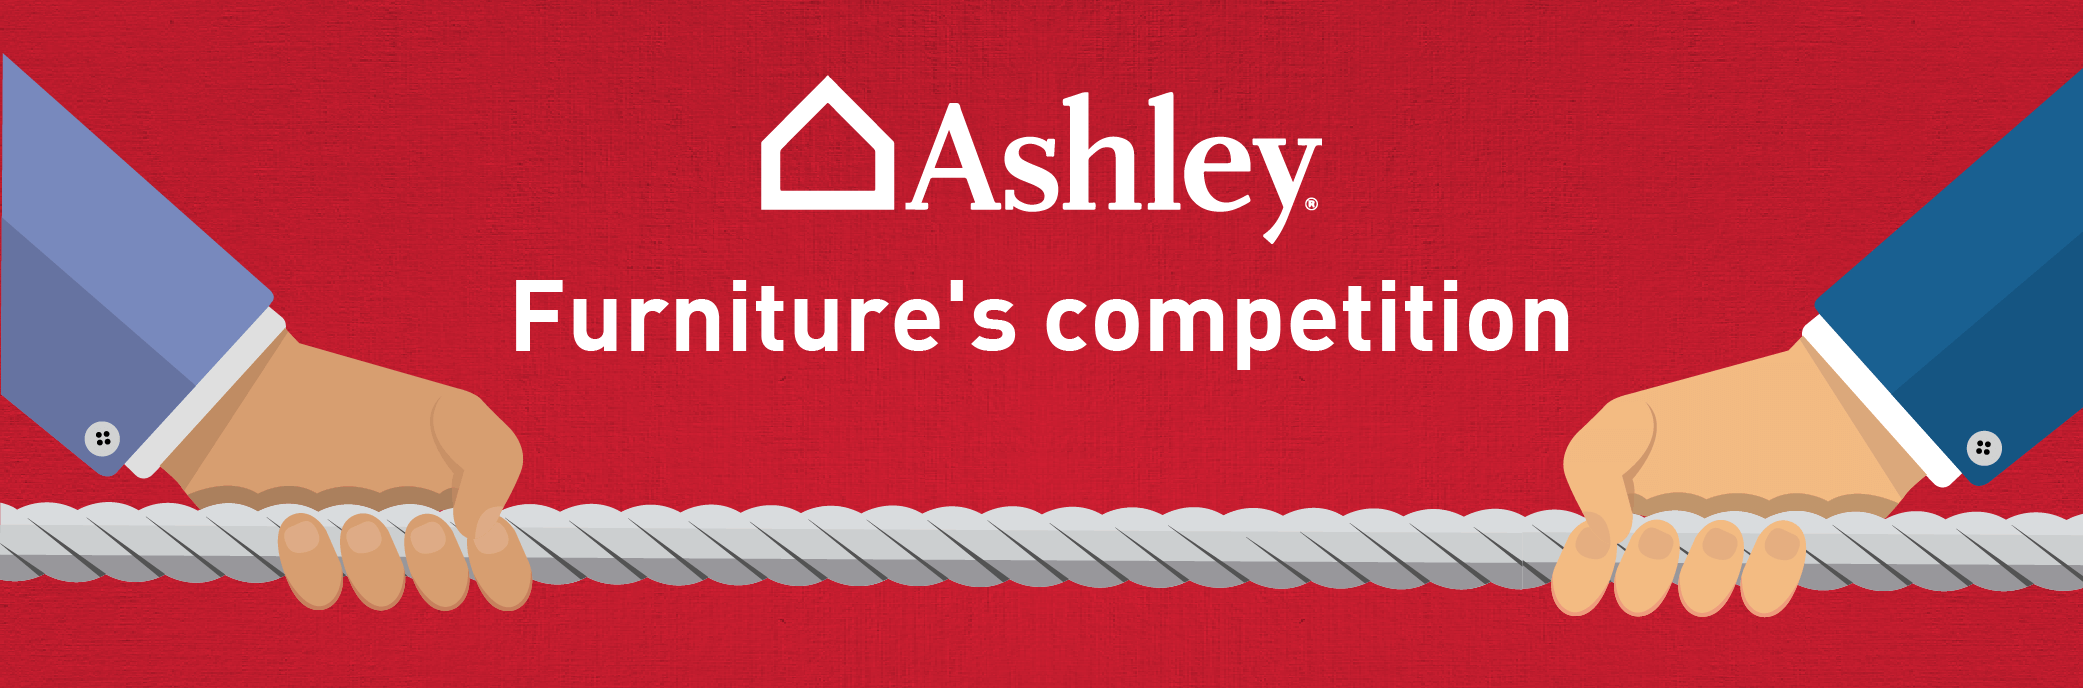 Ashley Furniture s competition. Ashley Home Furniture Credit Card Review   CreditLoan com